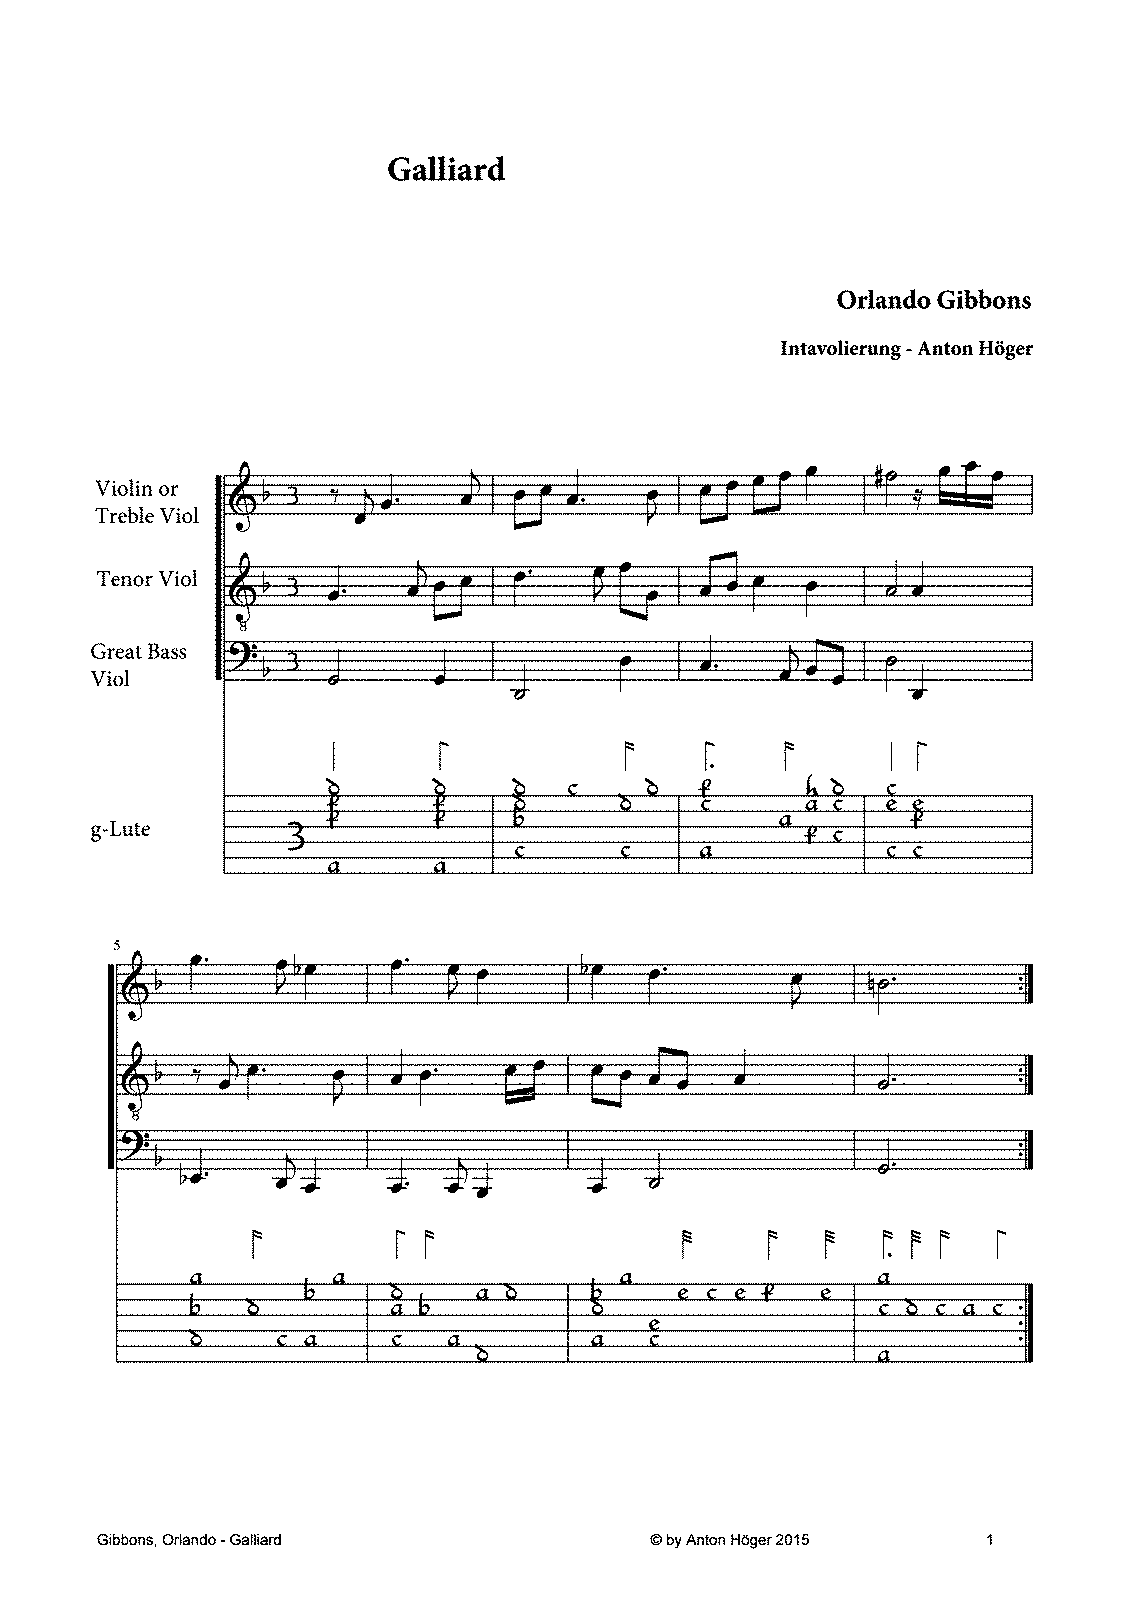 PMLP585034-Gibbons, Orlando - Galliard (Jacobean Consort Music).pdf